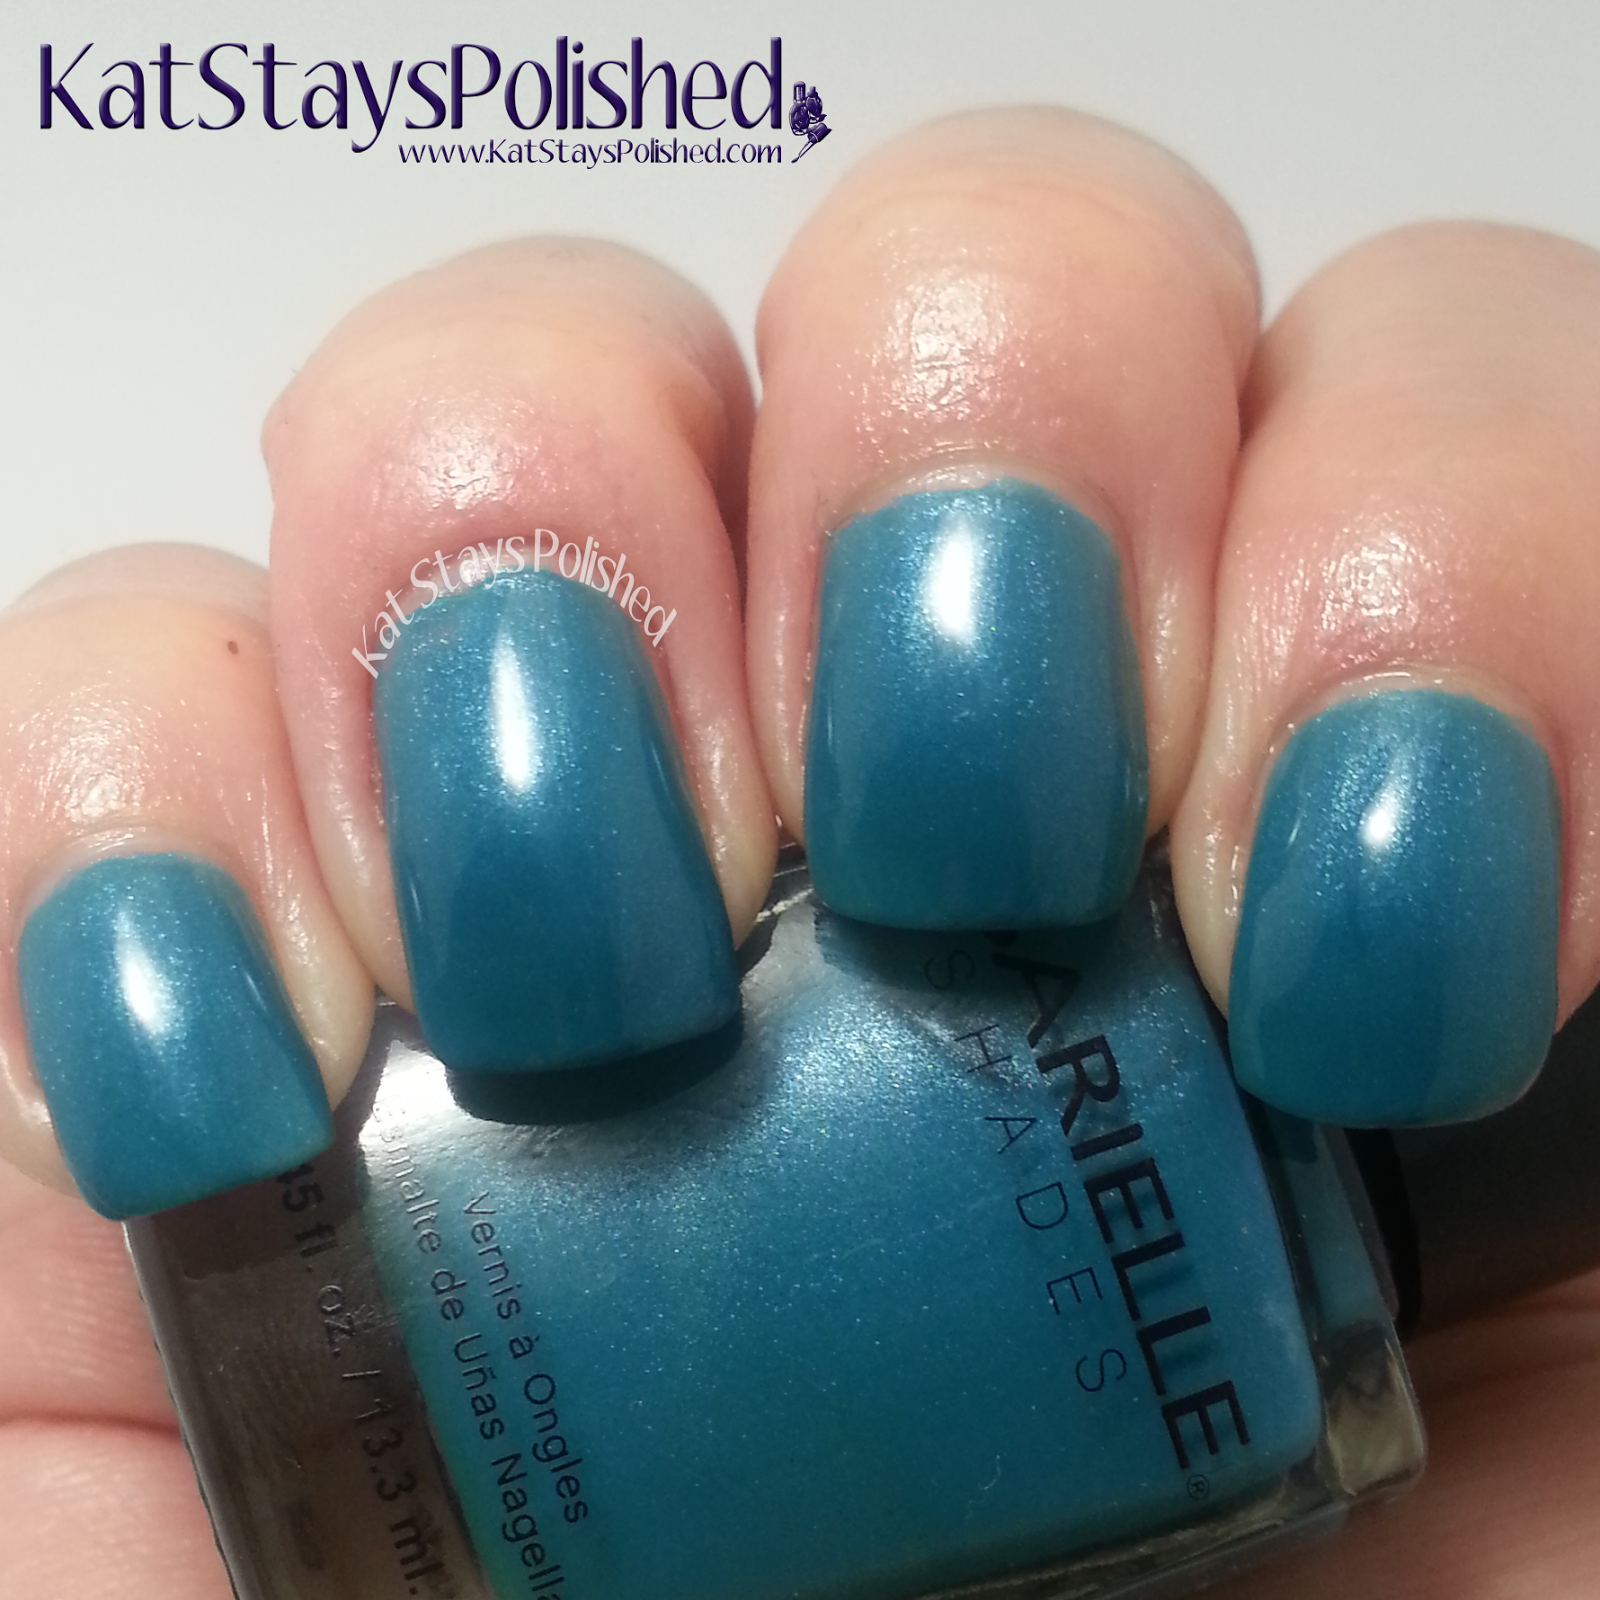 Barielle Gentle Breeze - Under the Sea | Kat Stays Polished